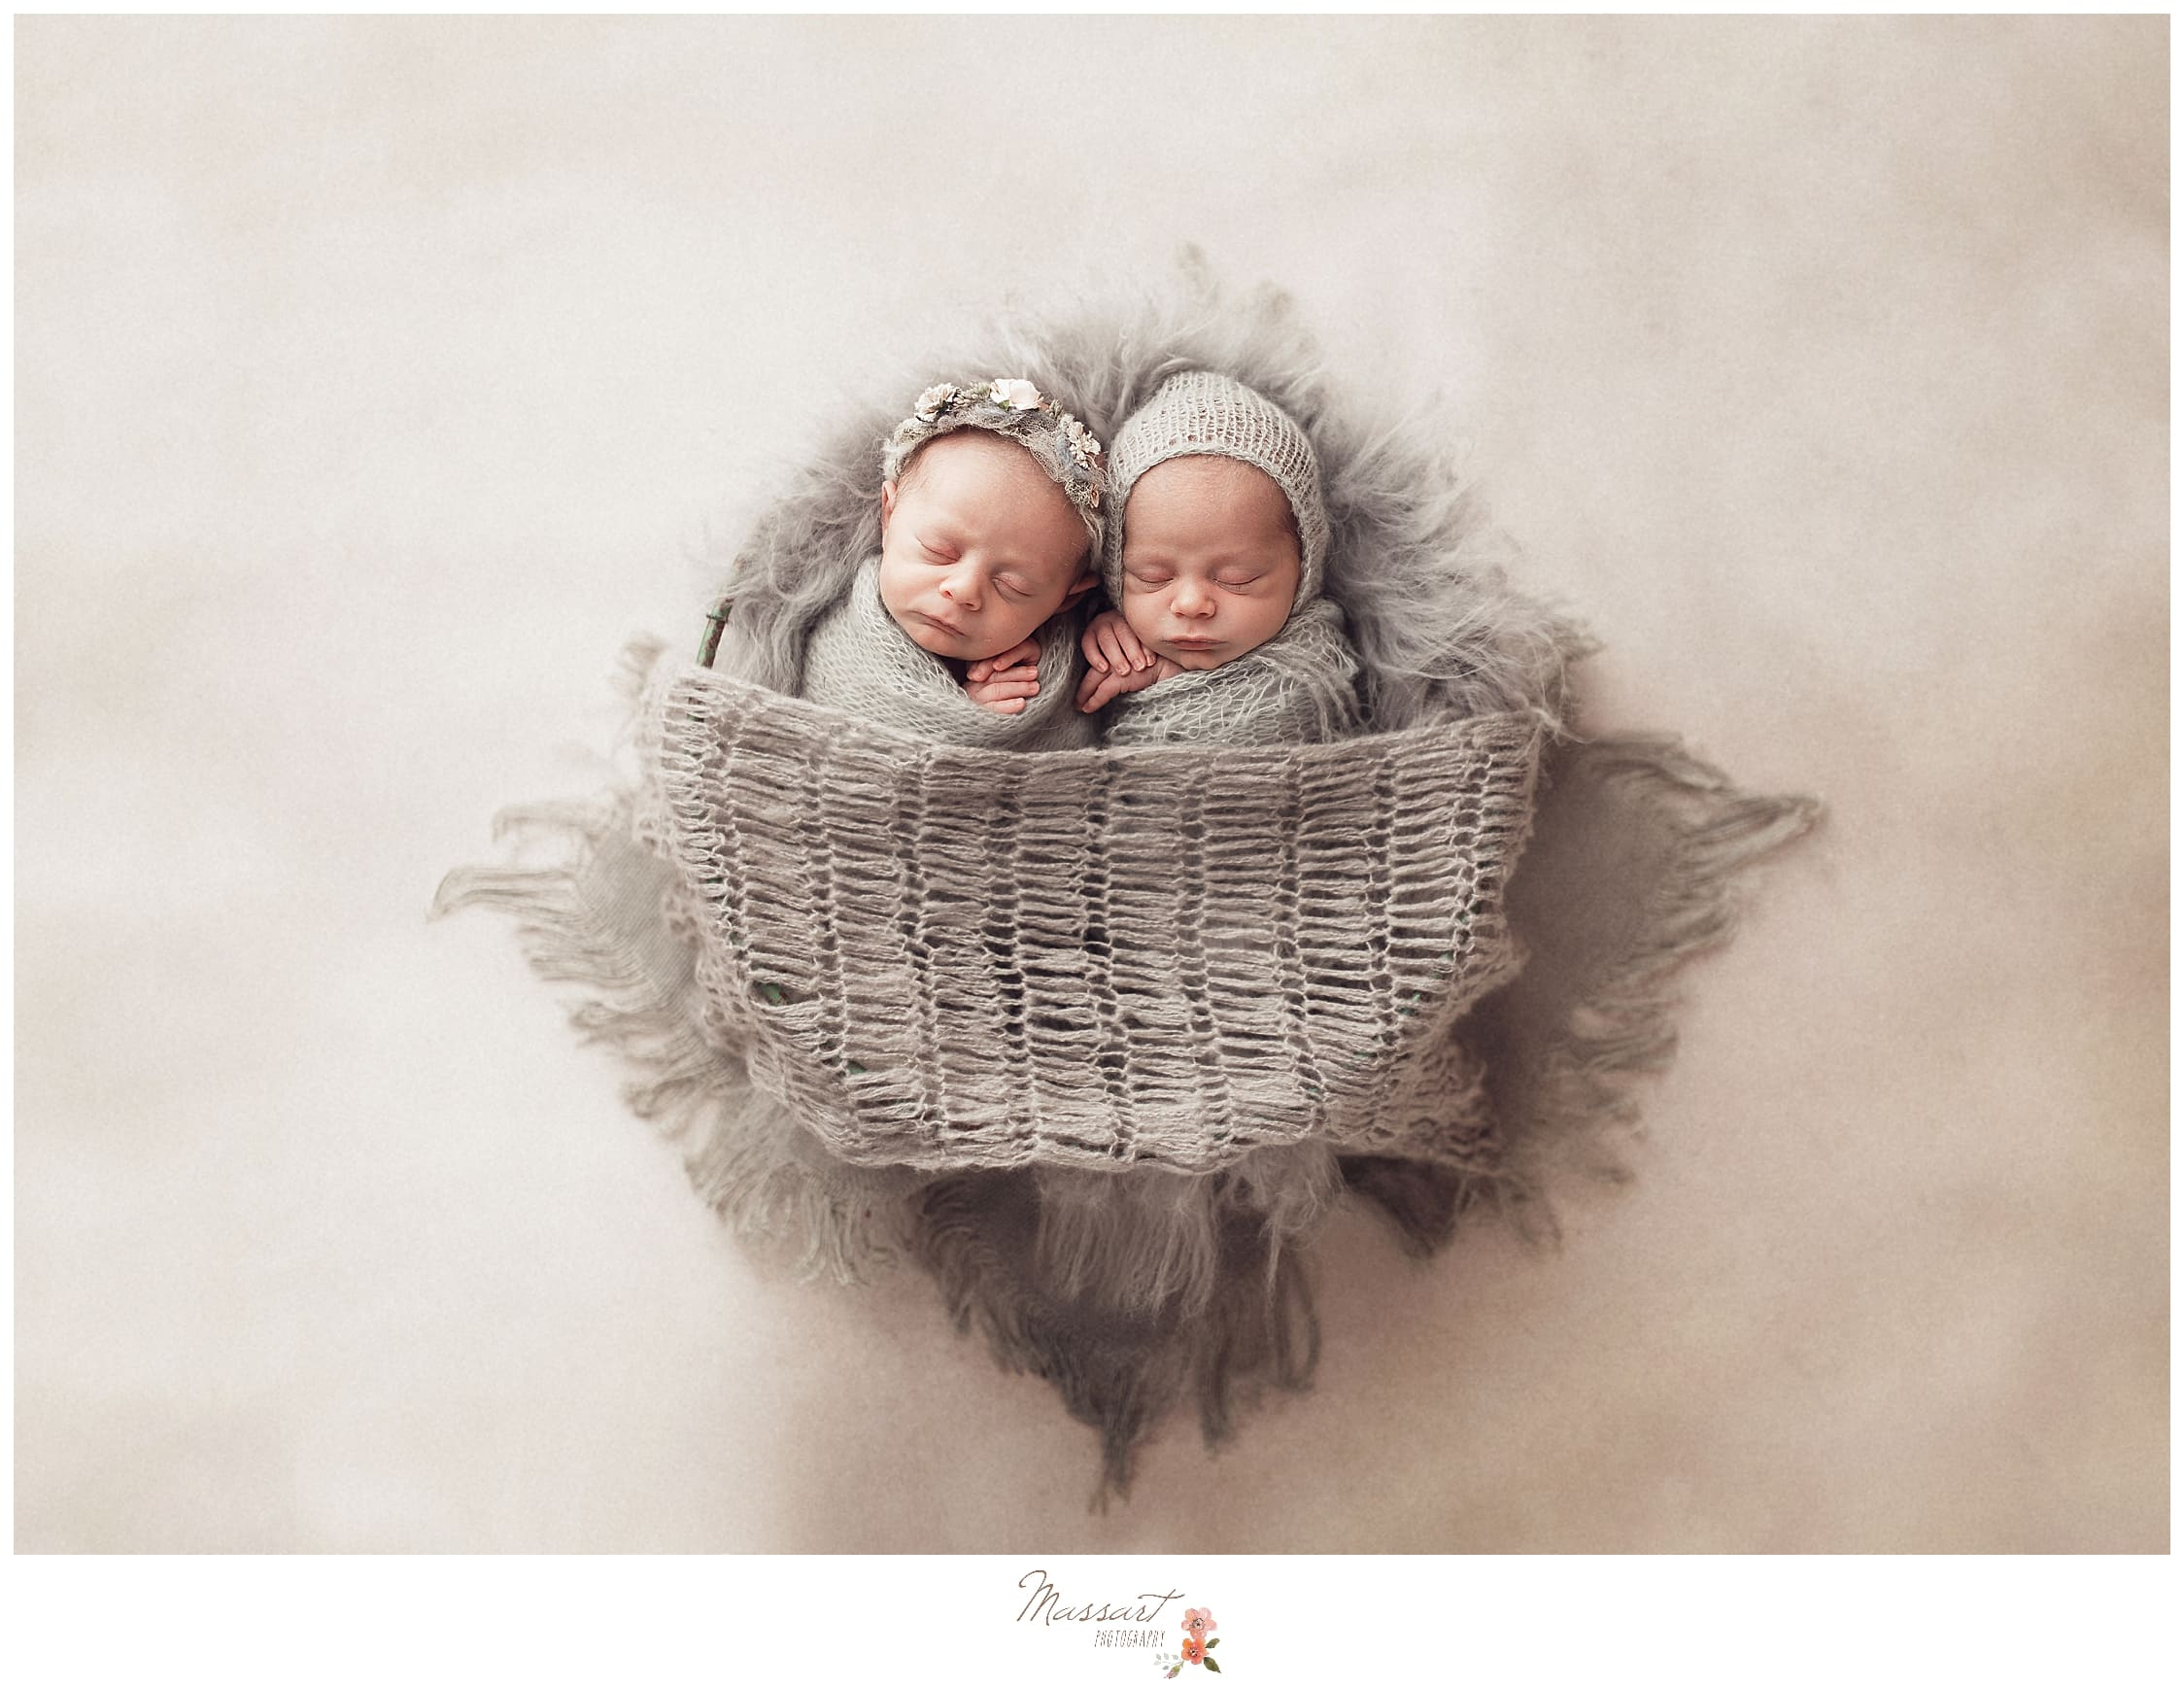 A fine art image of twins during a newborn photoshoot by Massart Photography in Rhode Island